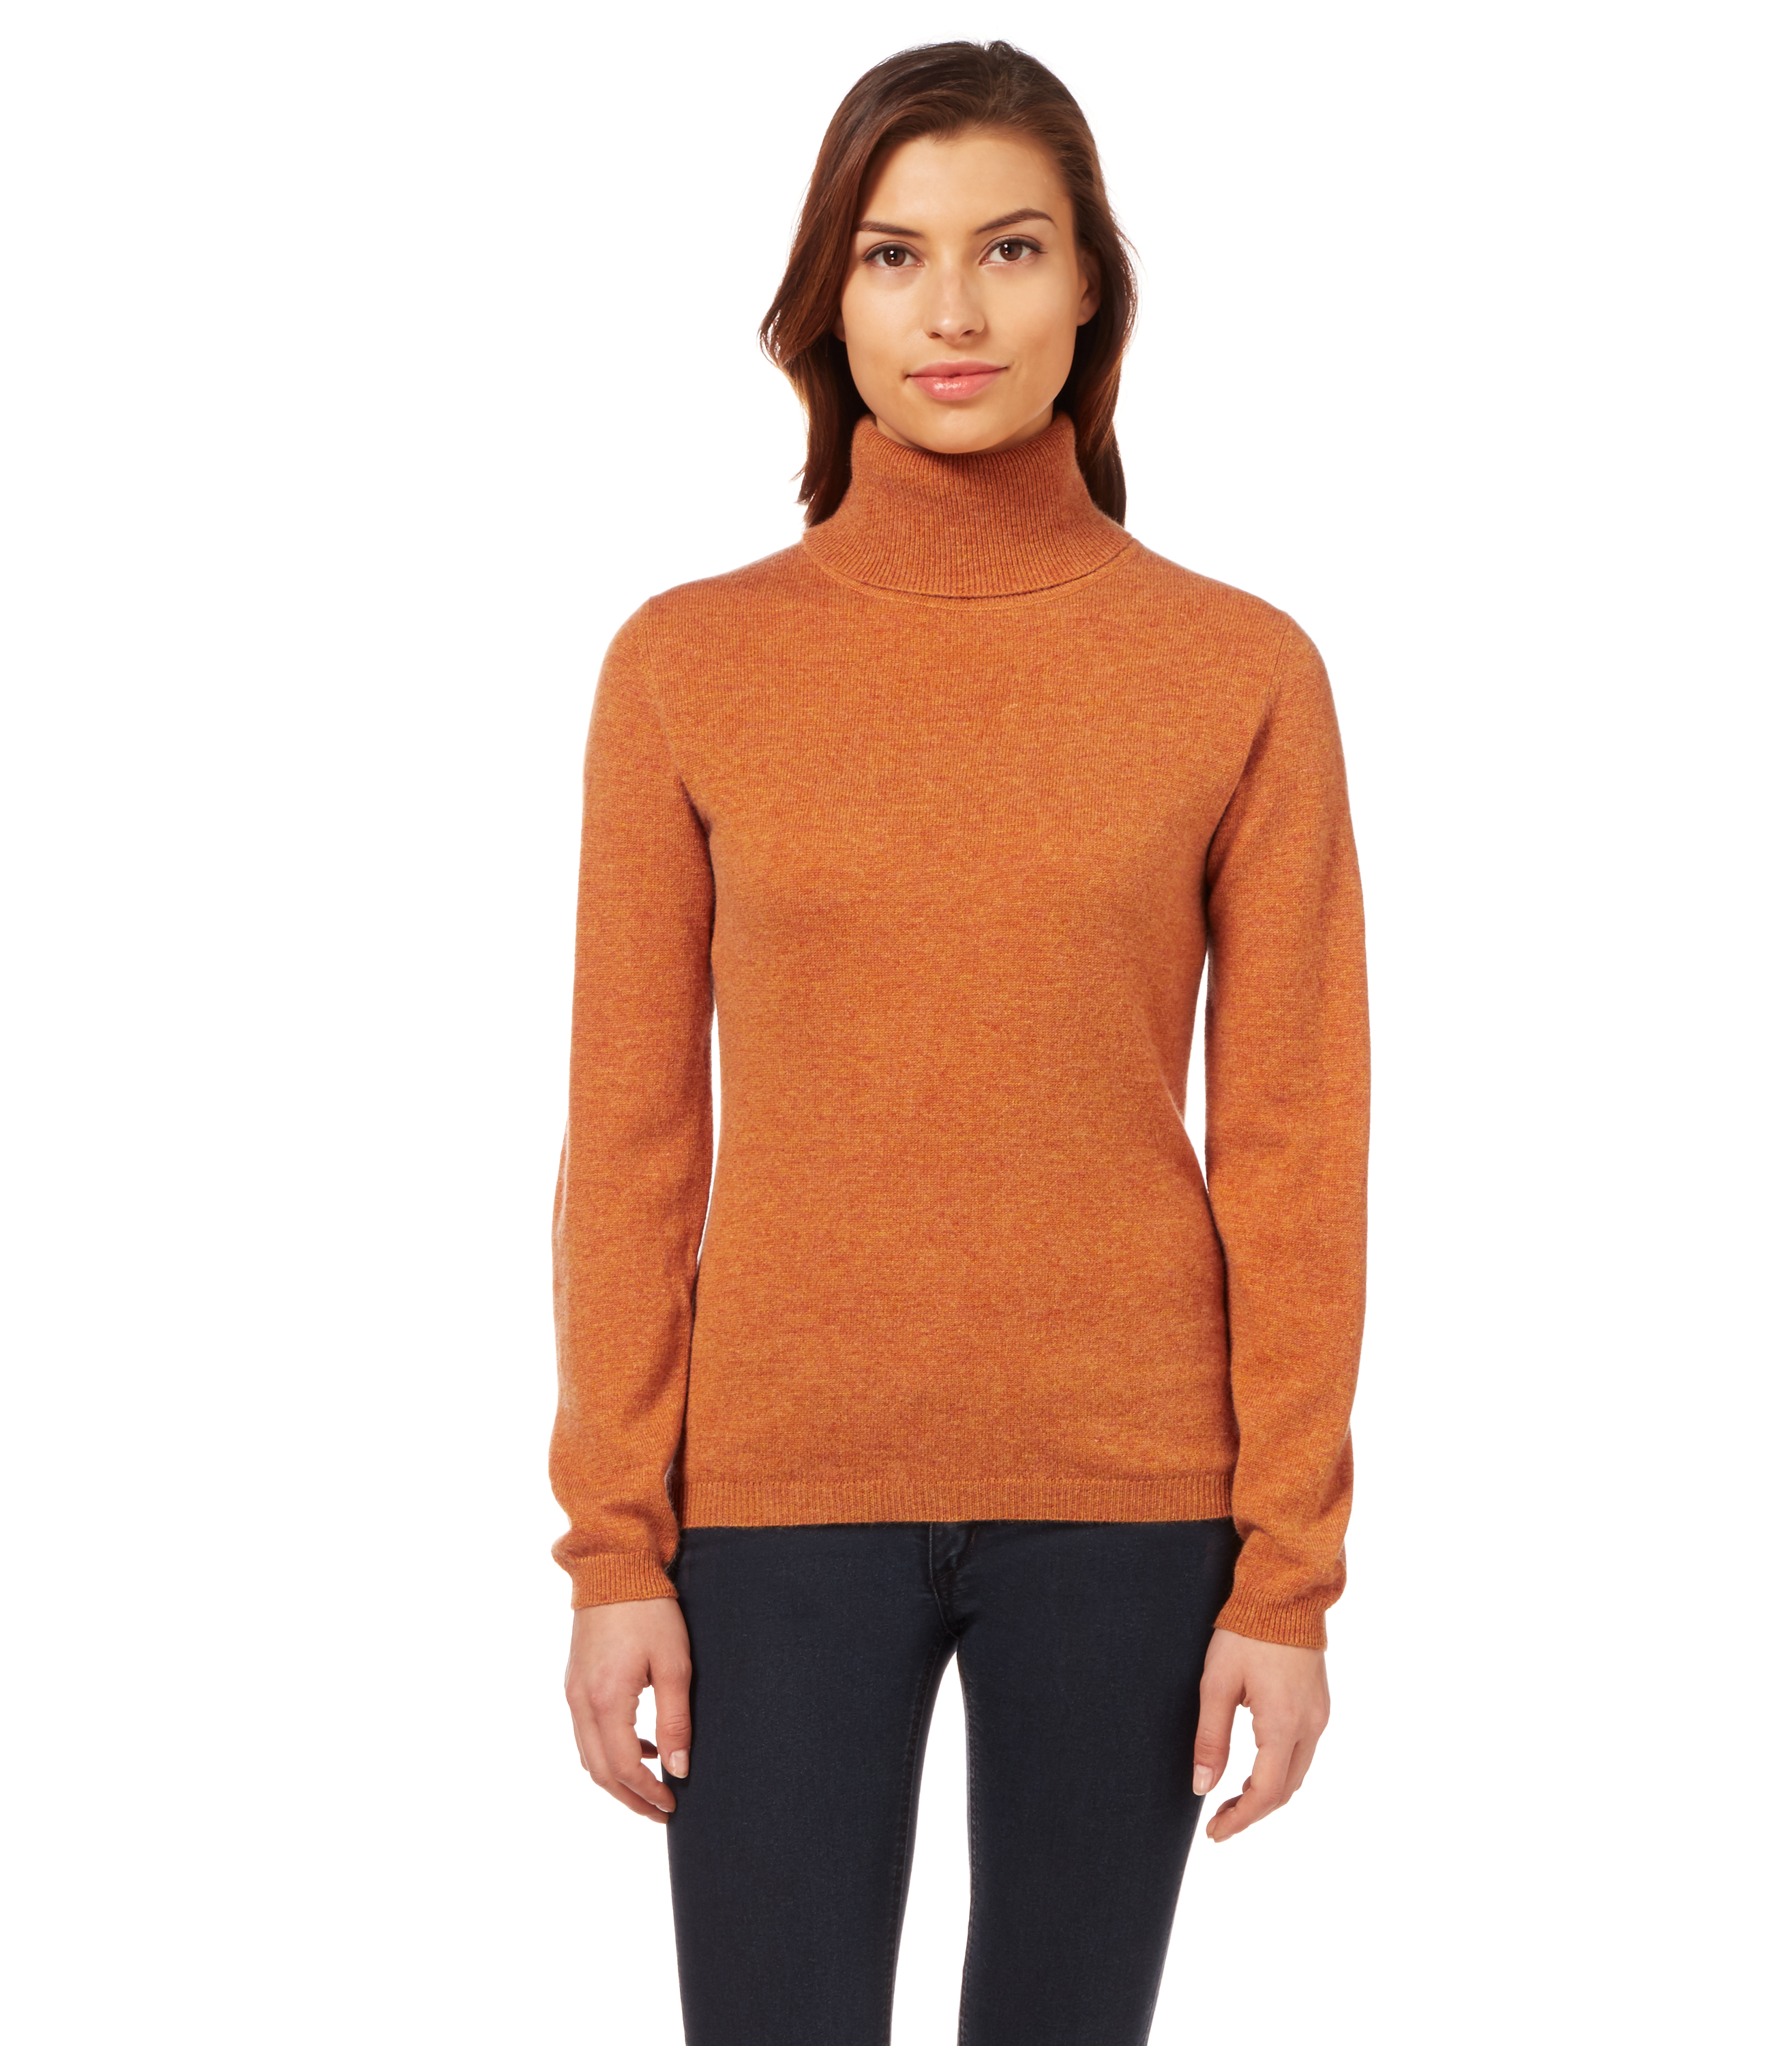 Discover the range of polo neck, roll neck and high neck jumpers for women from Jigsaw. With stunning contemporary design and made from beautiful cashmere or wool. Visit today to check out the full range of colours and styles to find the perfect piece for you.